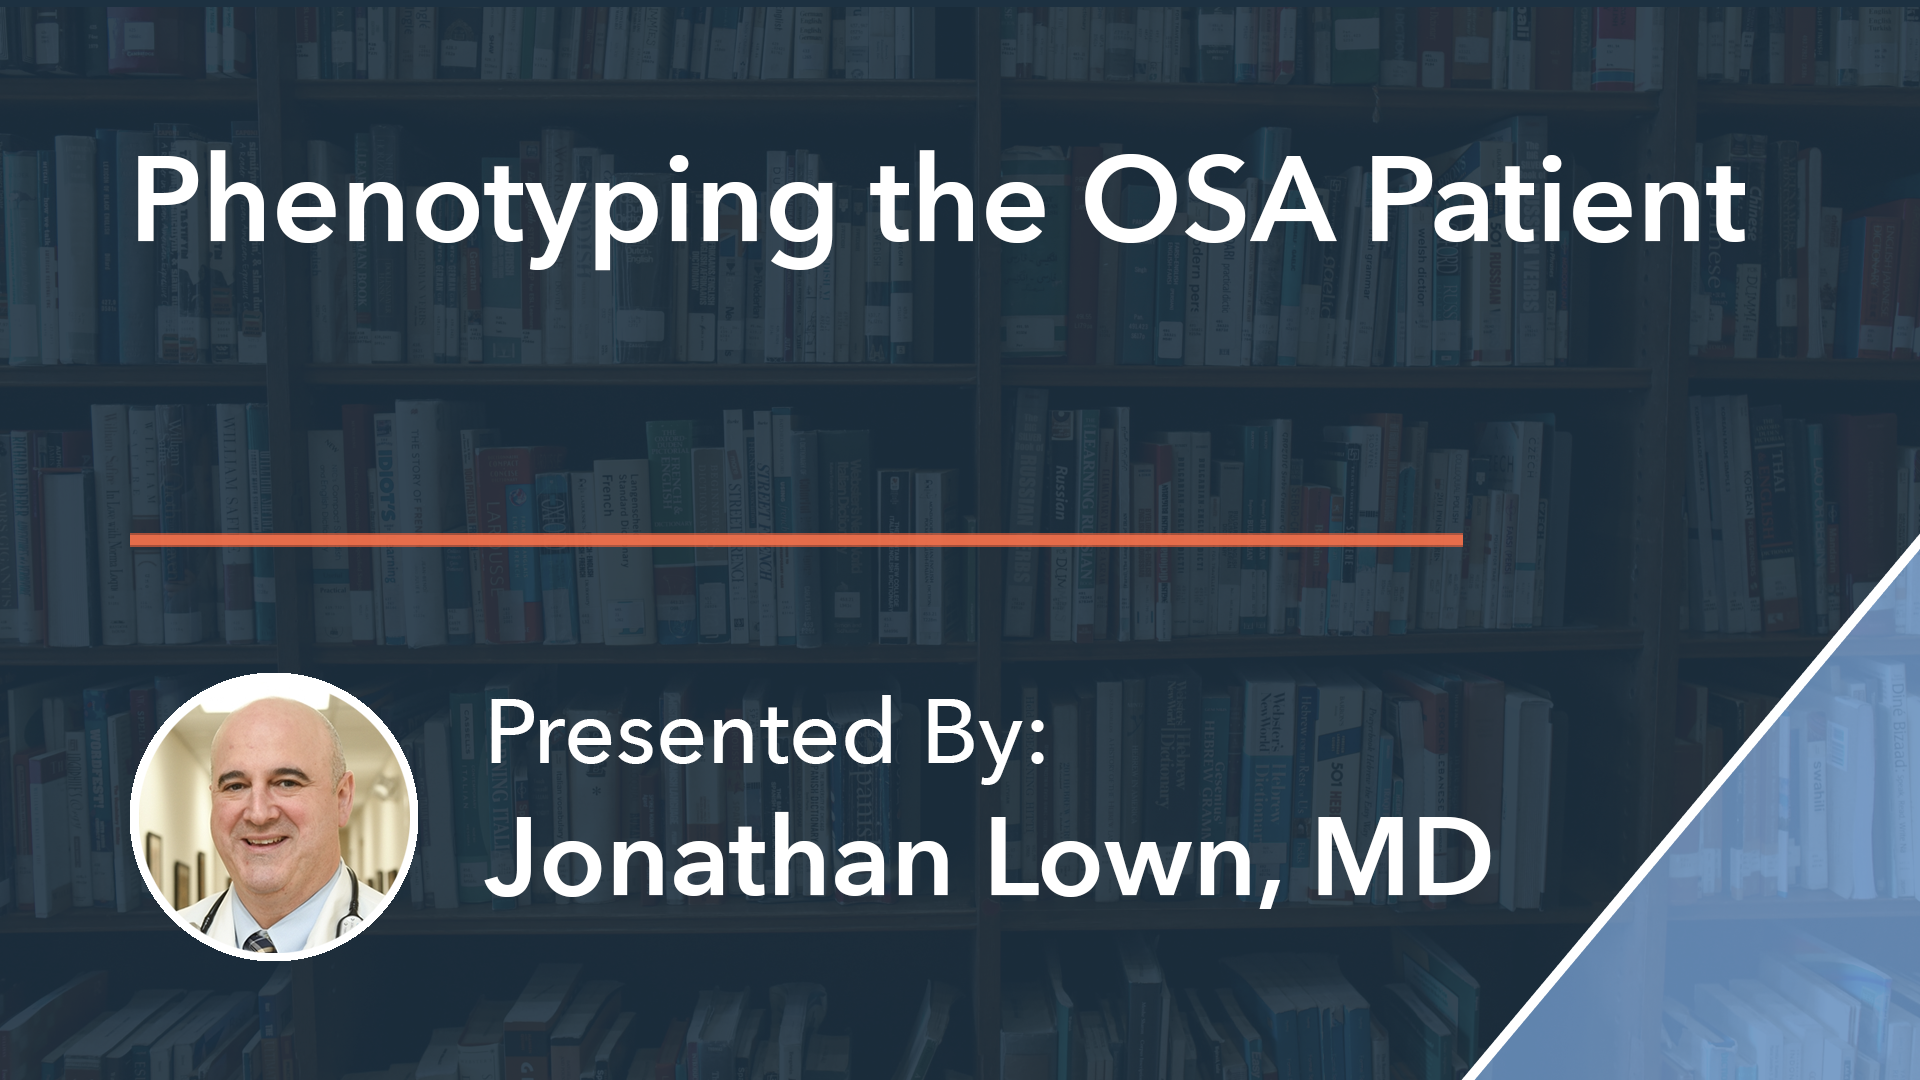 Phenotyping the OSA Patient Thumbnail Dr Jonathan Lown